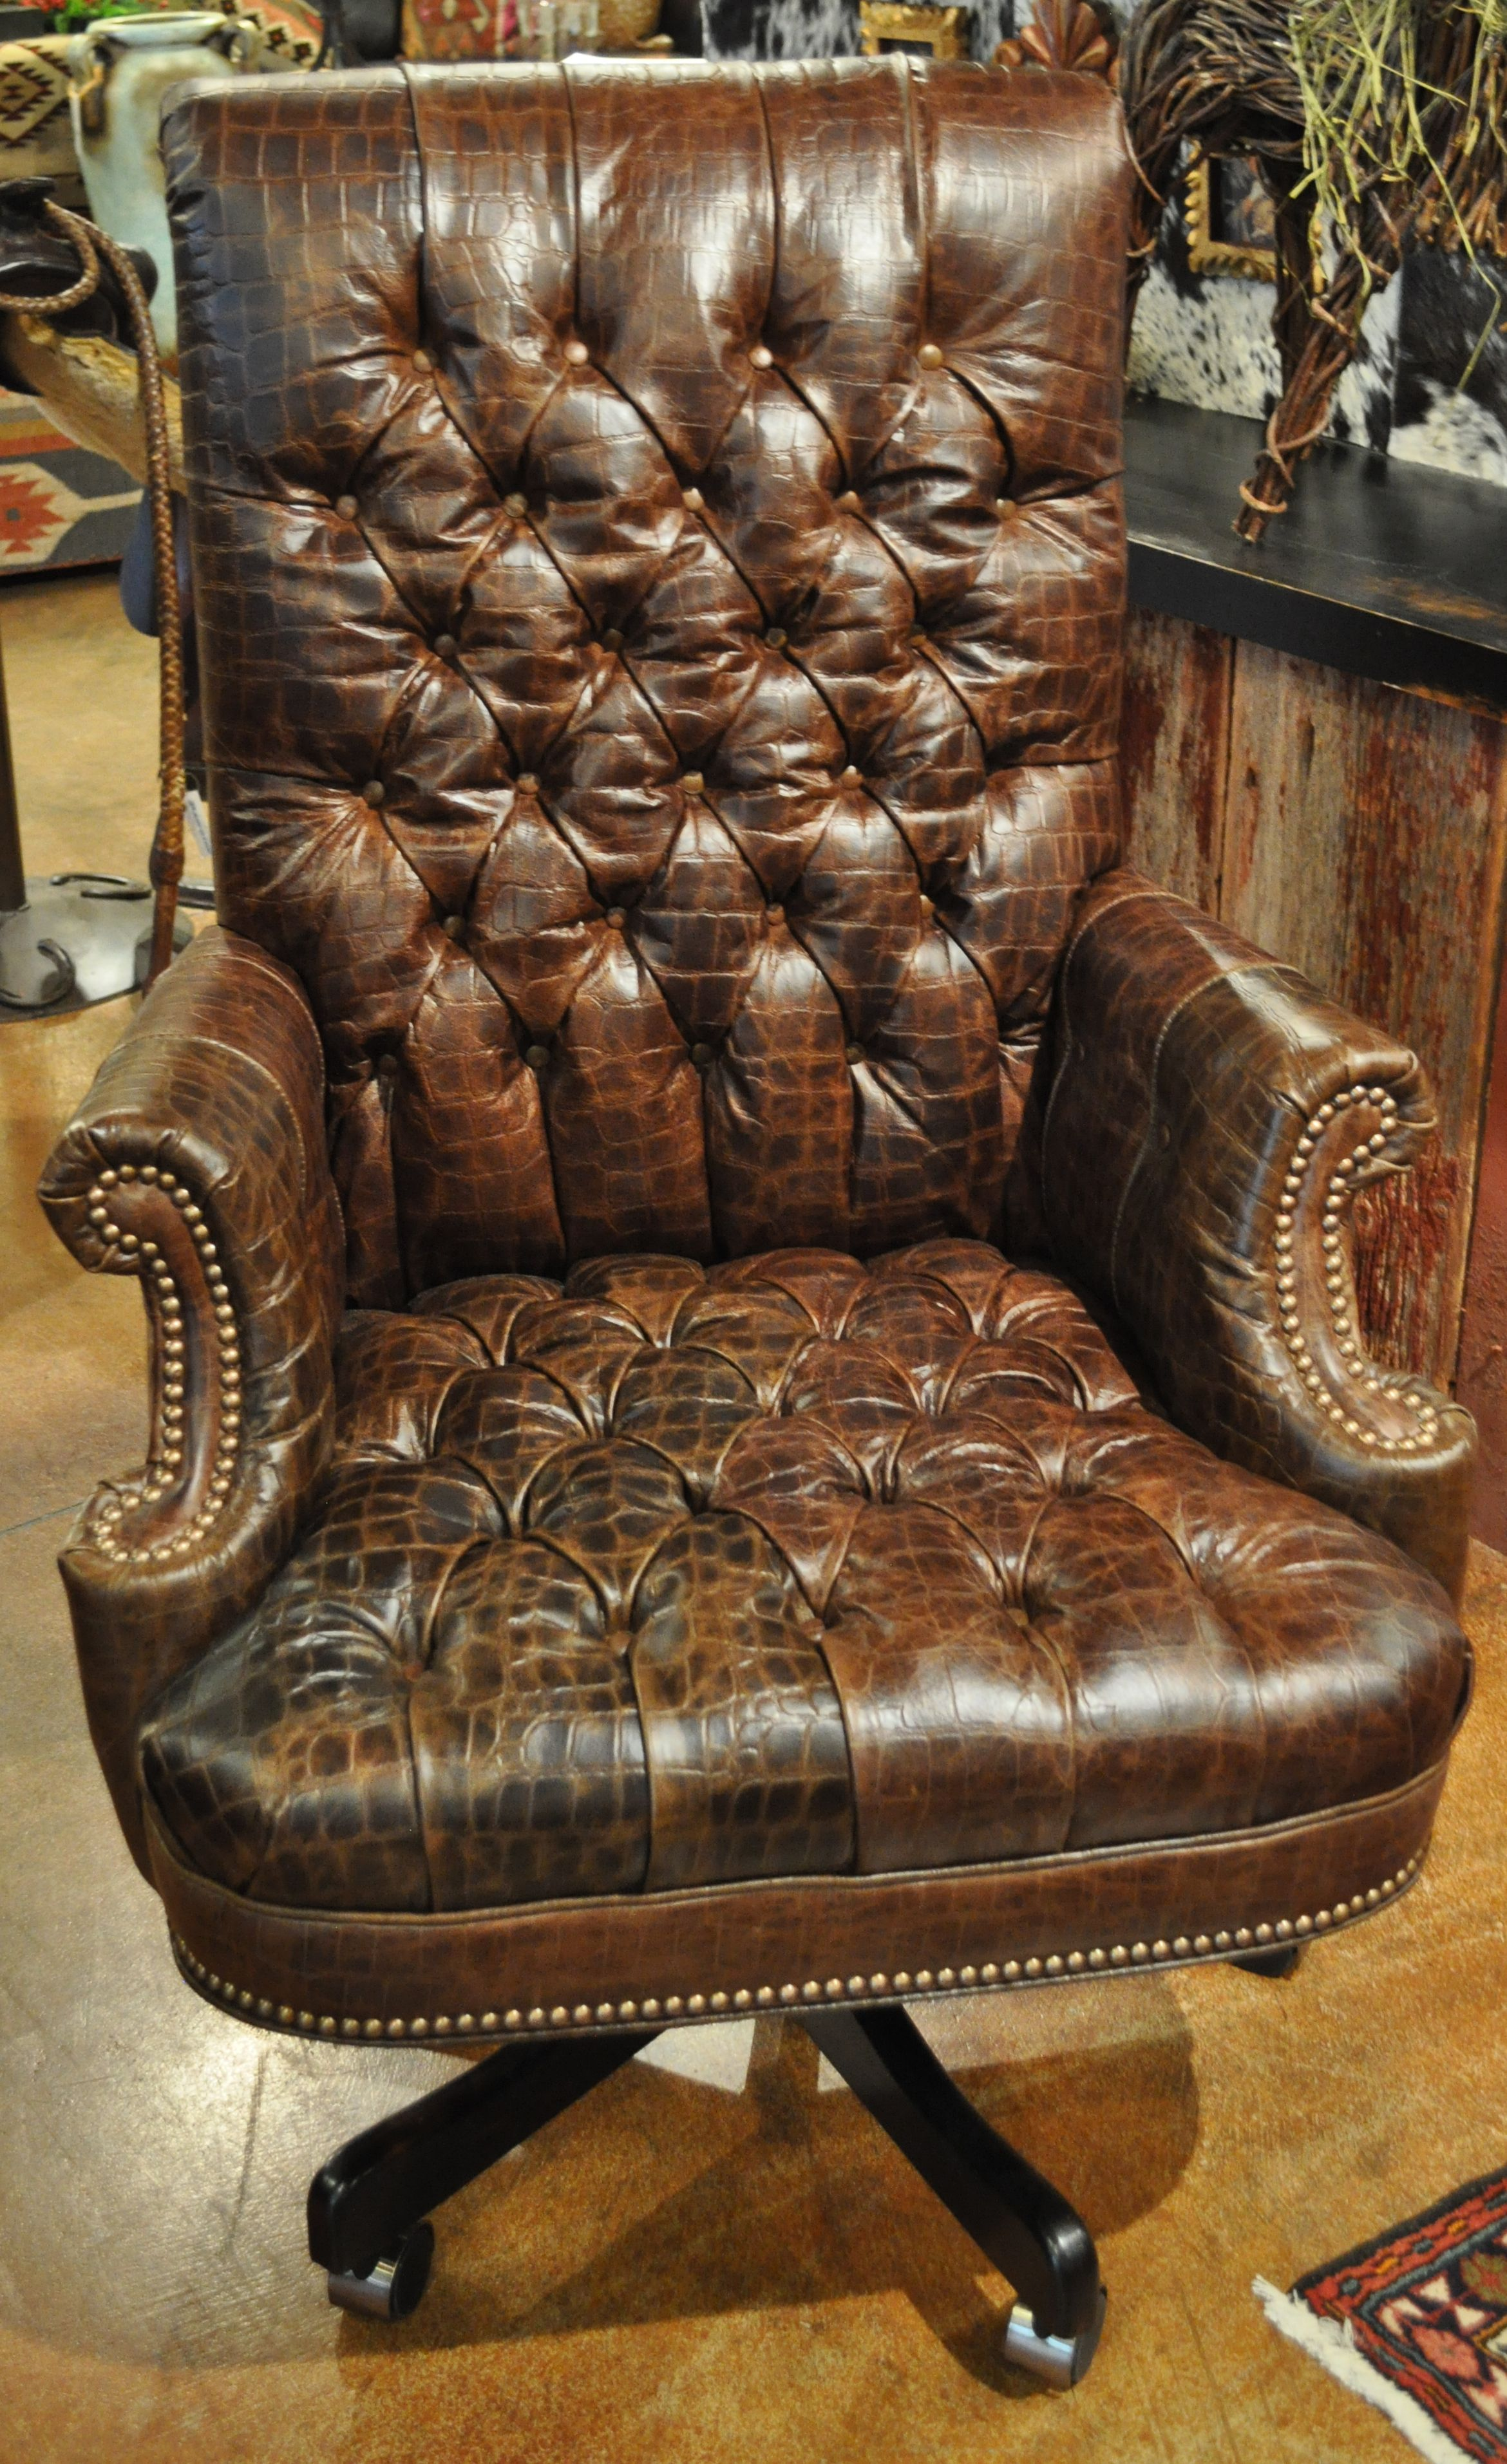 Tufted Leather Office Chair Pin By Rawhide Ranch Co On Furniture At Rawhide Brown Leather